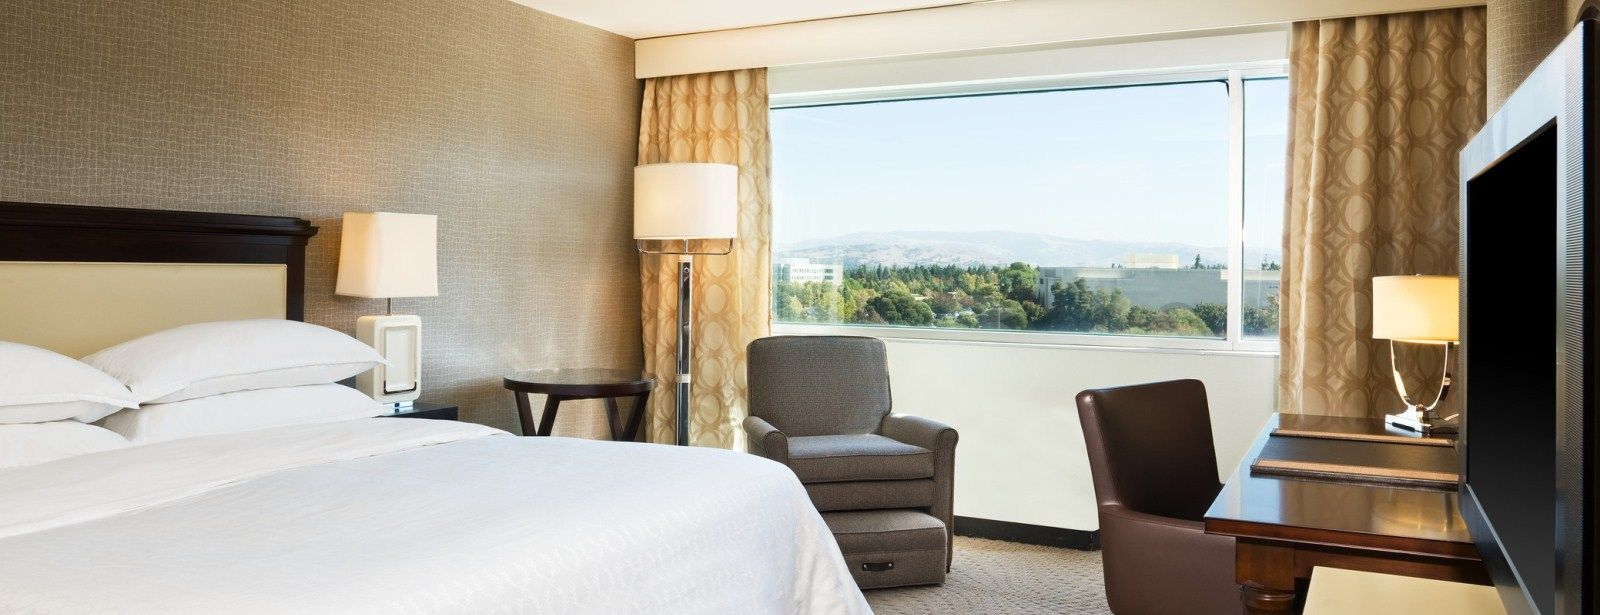 Deluxe Rooms | Sheraton Pleasanton Hotel